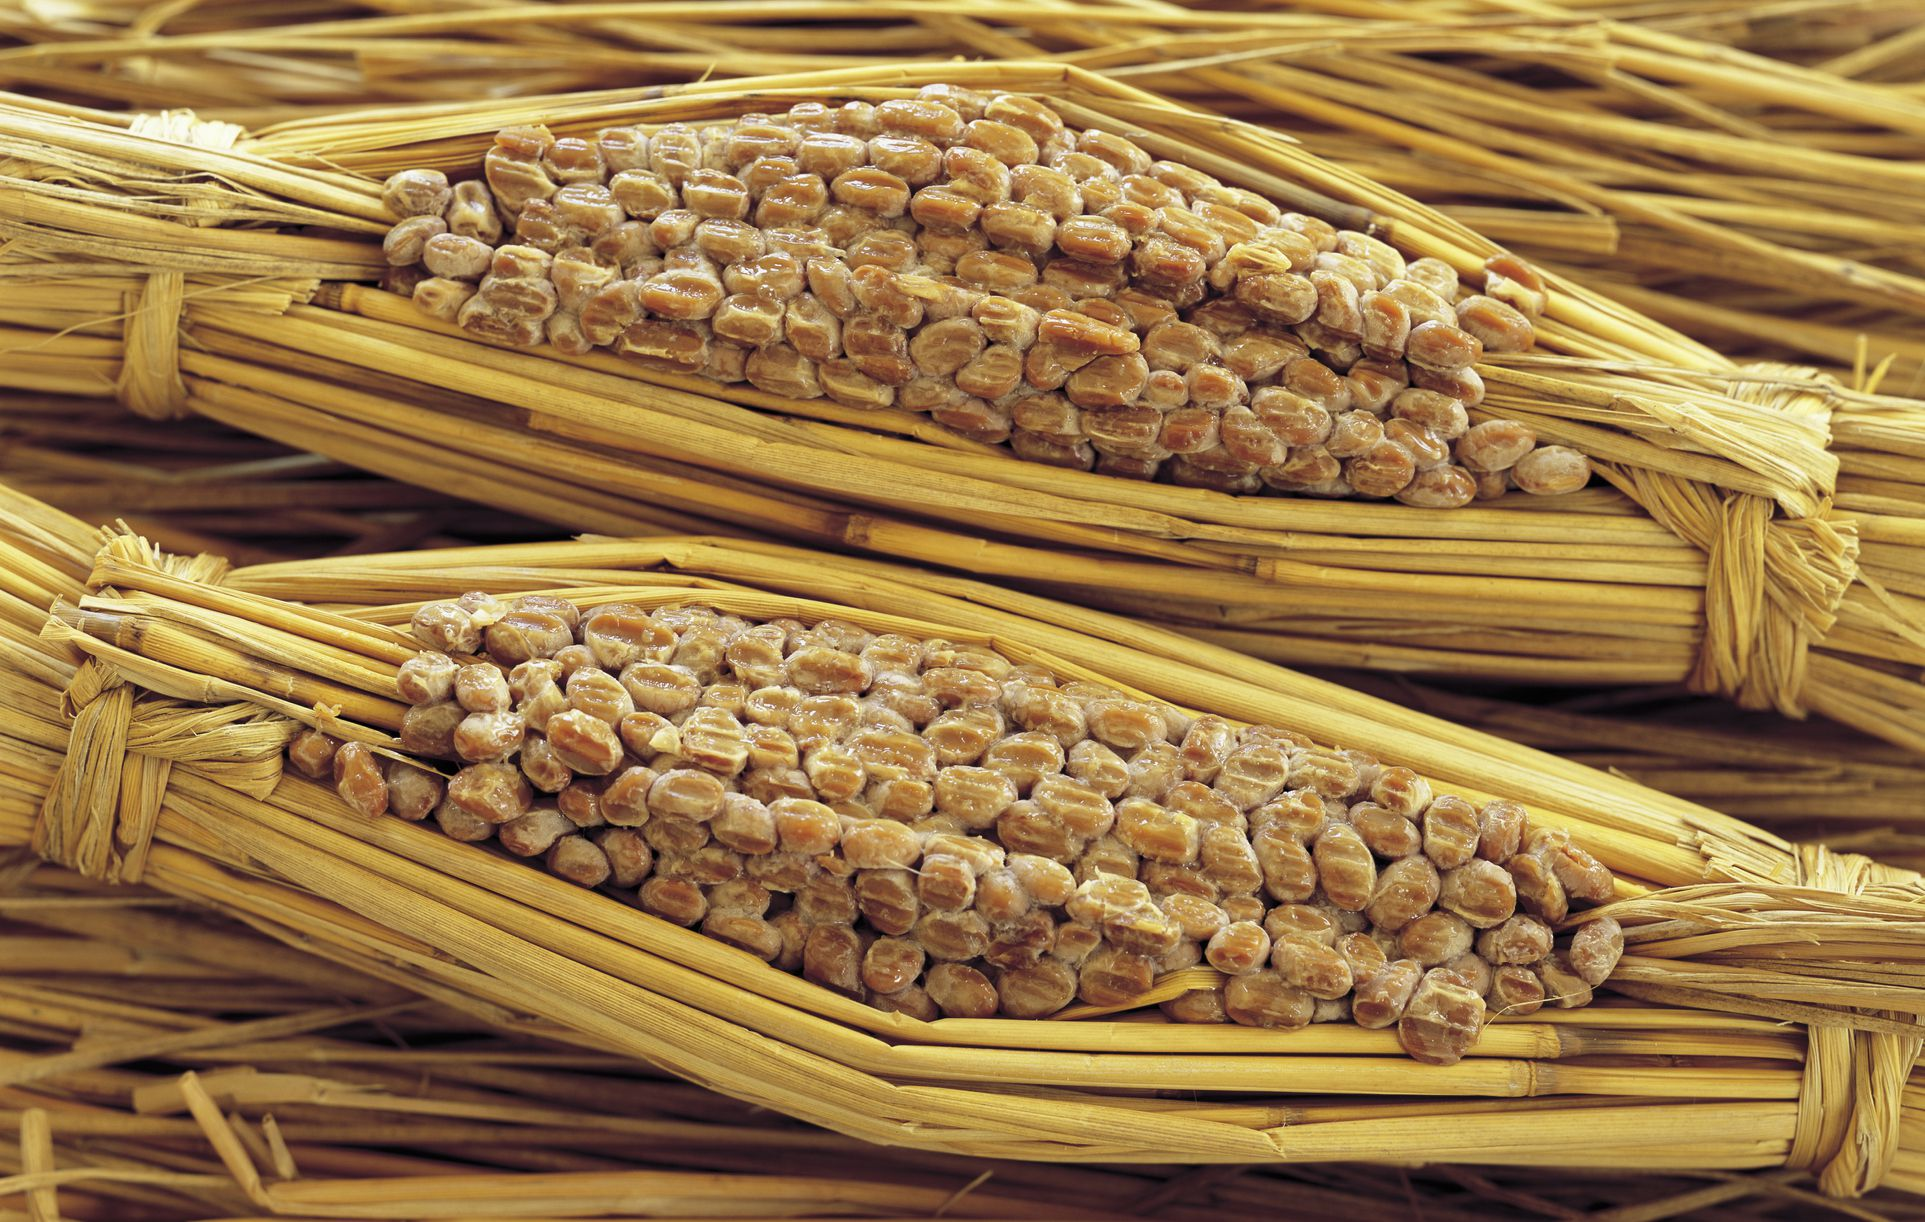 Nattokinase: Benefits, Side Effects, and Preparations